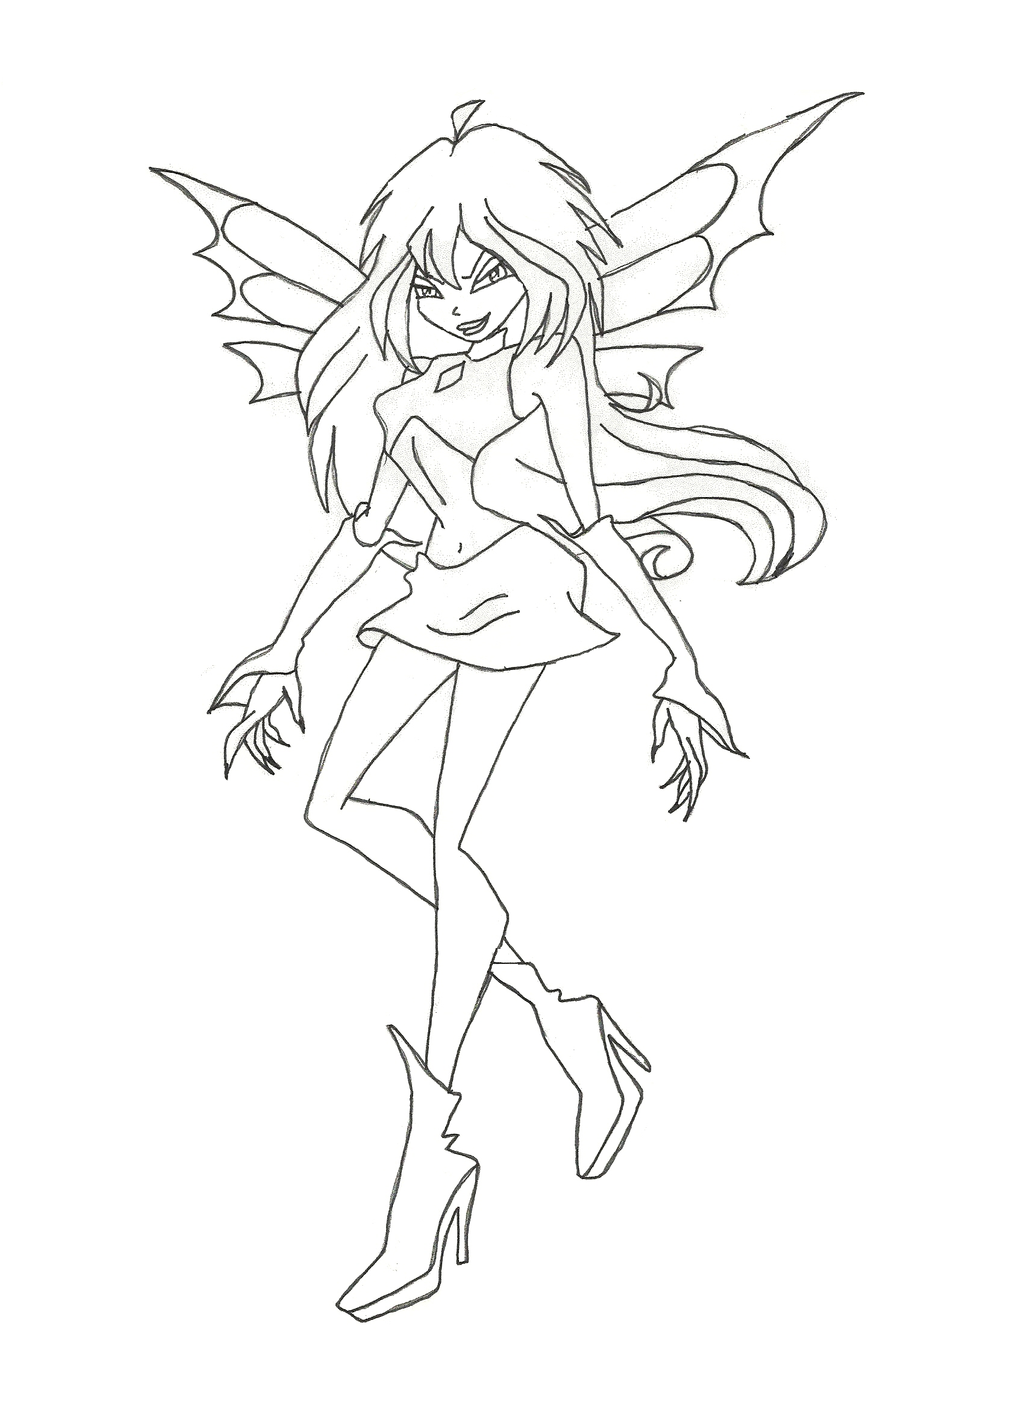 Winx dark bloom coloring page by winxmagic237 on deviantart for Bloom winx coloring pages